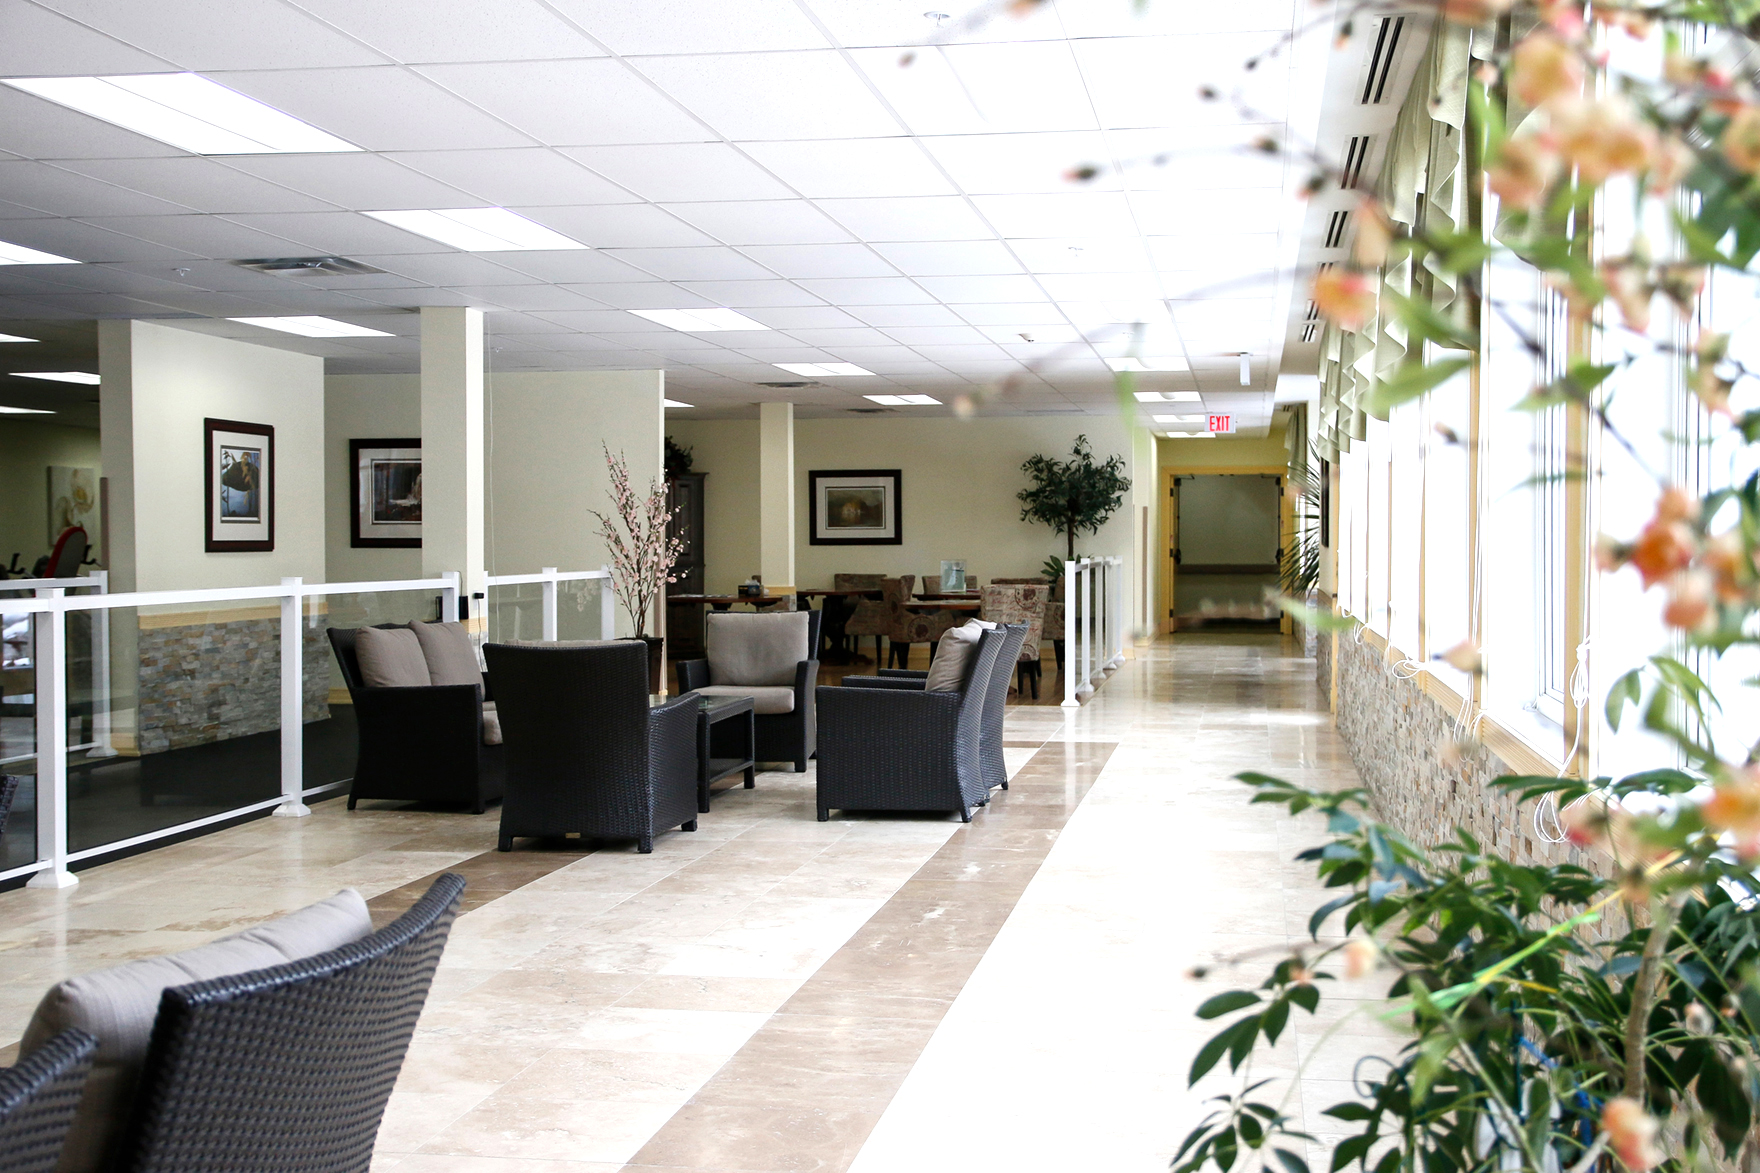 Lounge area at Kawartha Lakes Retirement Residence in Bobcaygeon